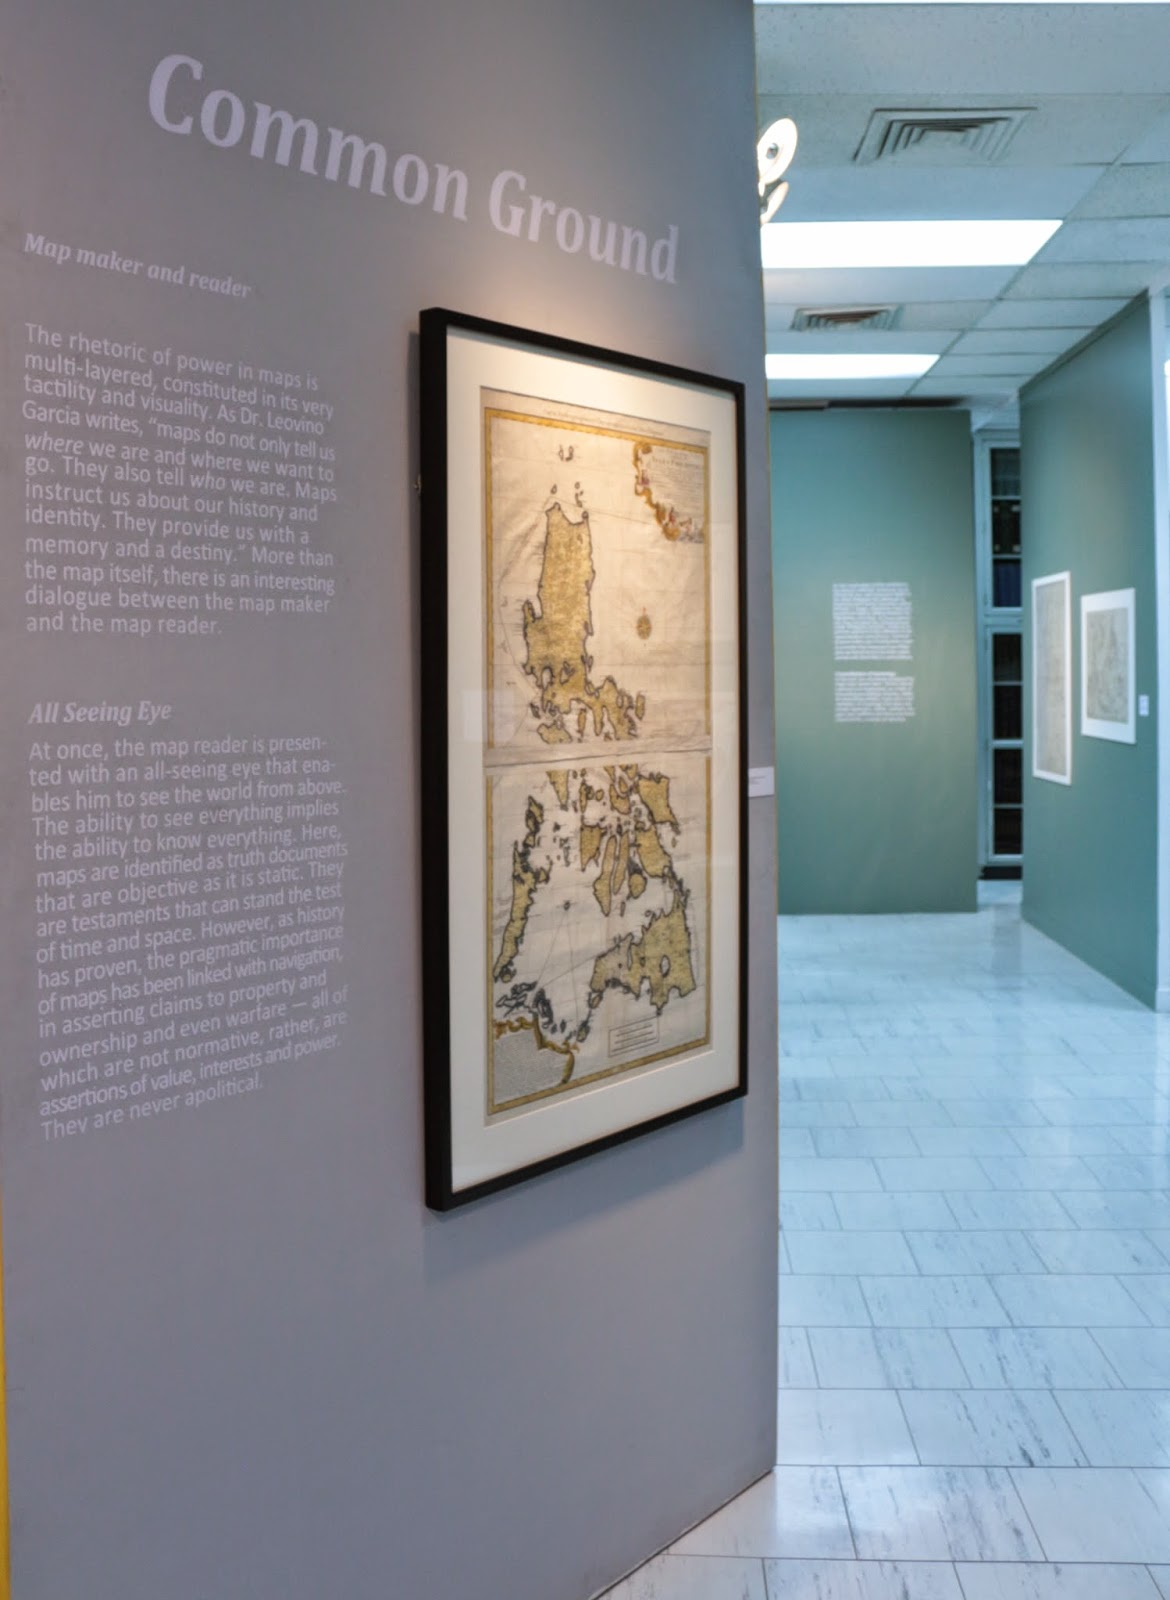 common ground a highlight of 21 antiquarian maps